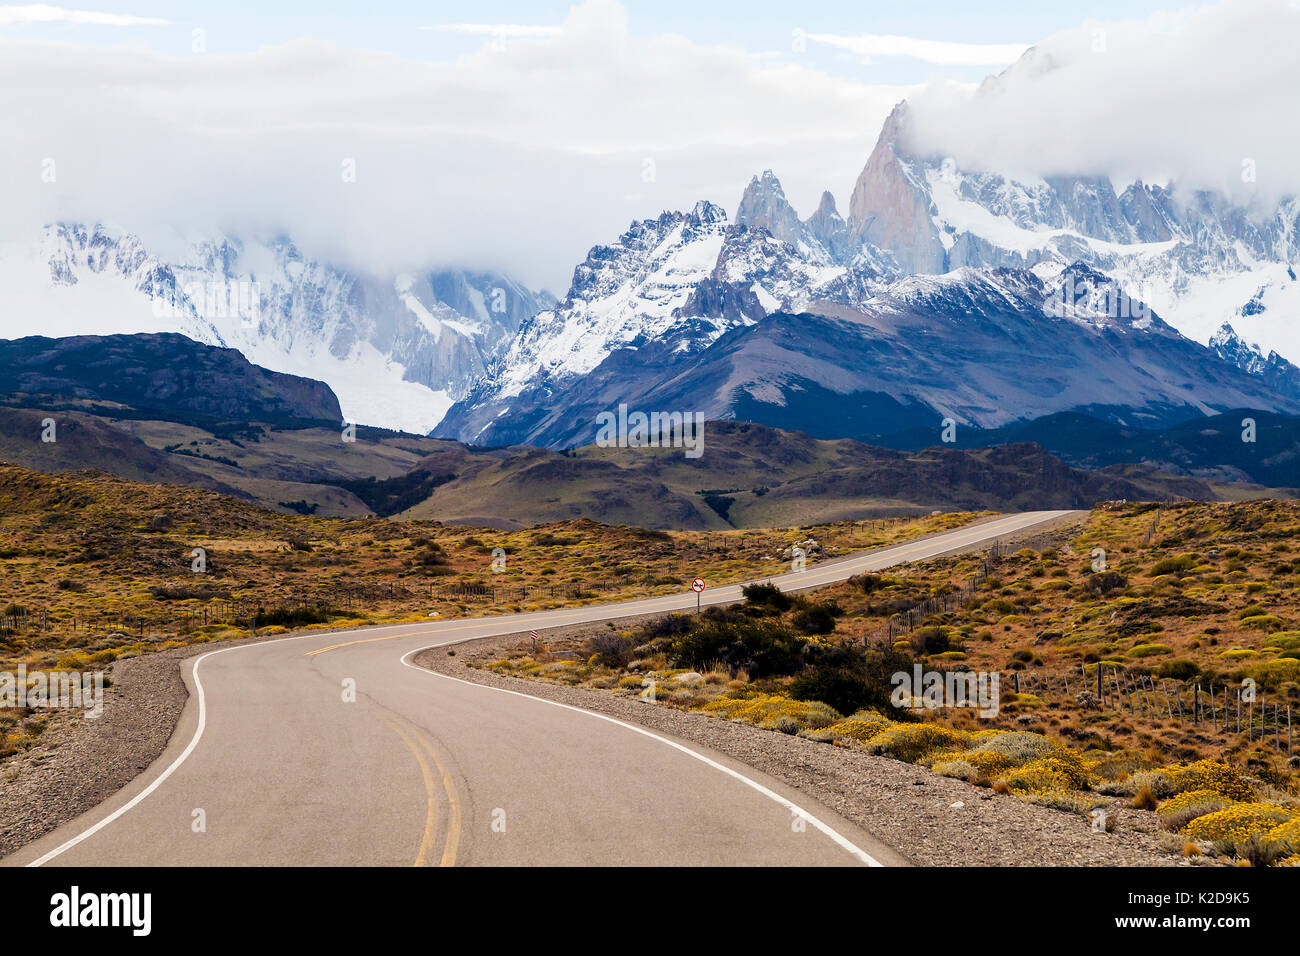 Route 40 in the Patagonian steppe, Argentina, approaching El Chalten and the Fitzroy Mountains, January 2014. - Stock Image